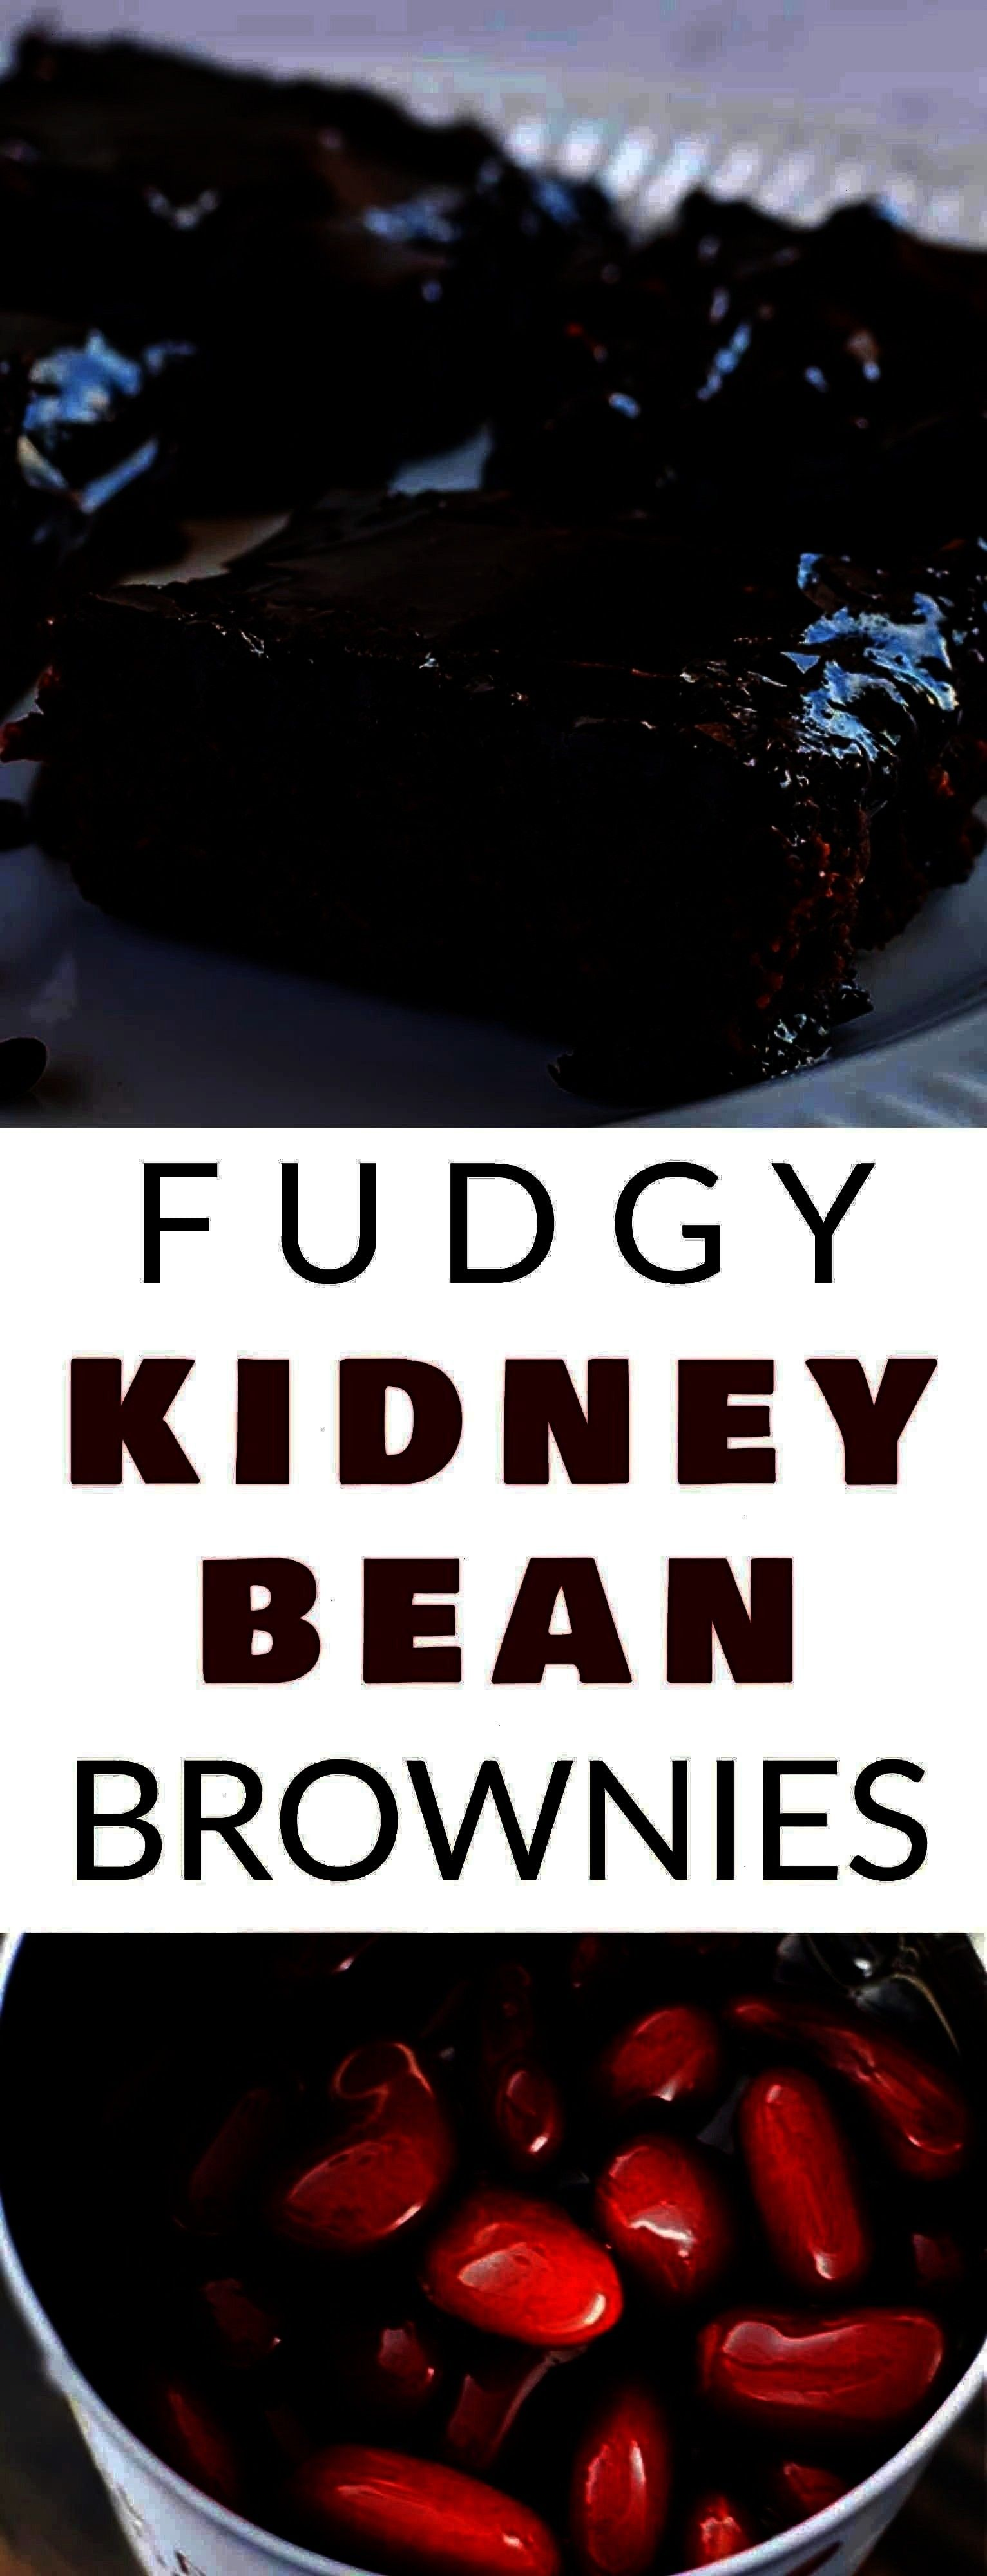 This Fudgy KIDNEY BEAN Brownies recipe is the BEST! These brownies are easy to make, moist and mad